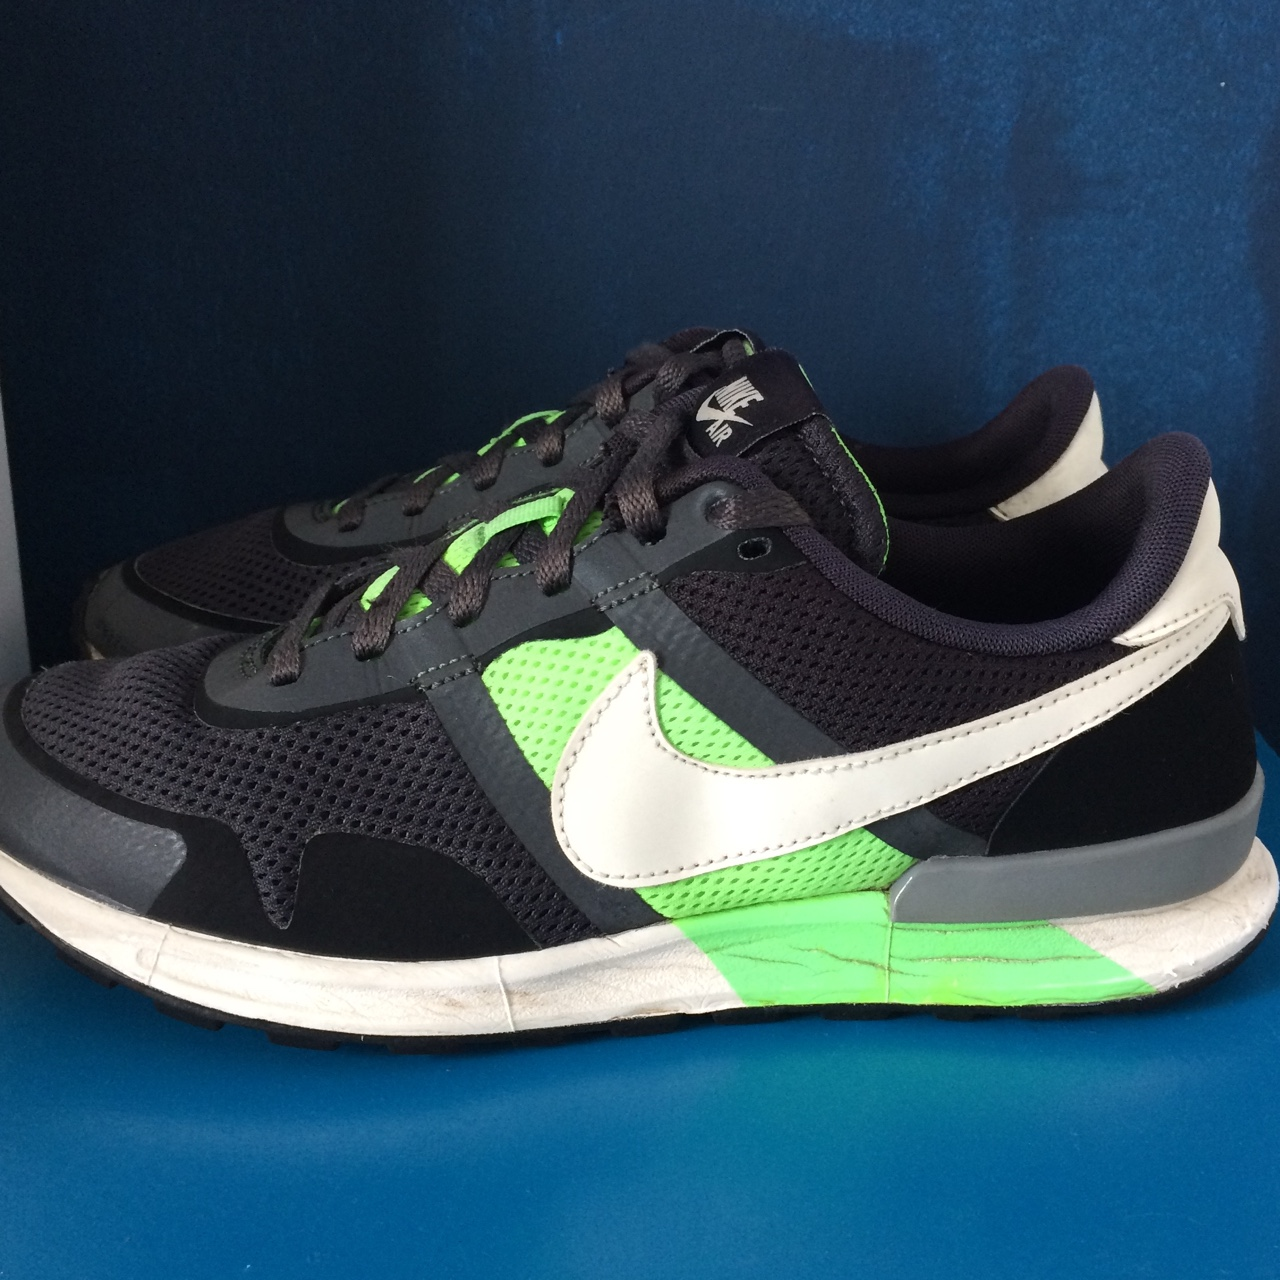 innovative design d677f 50f51 Nike Air Pegasus 83 80 black flash lime Worn - Depop